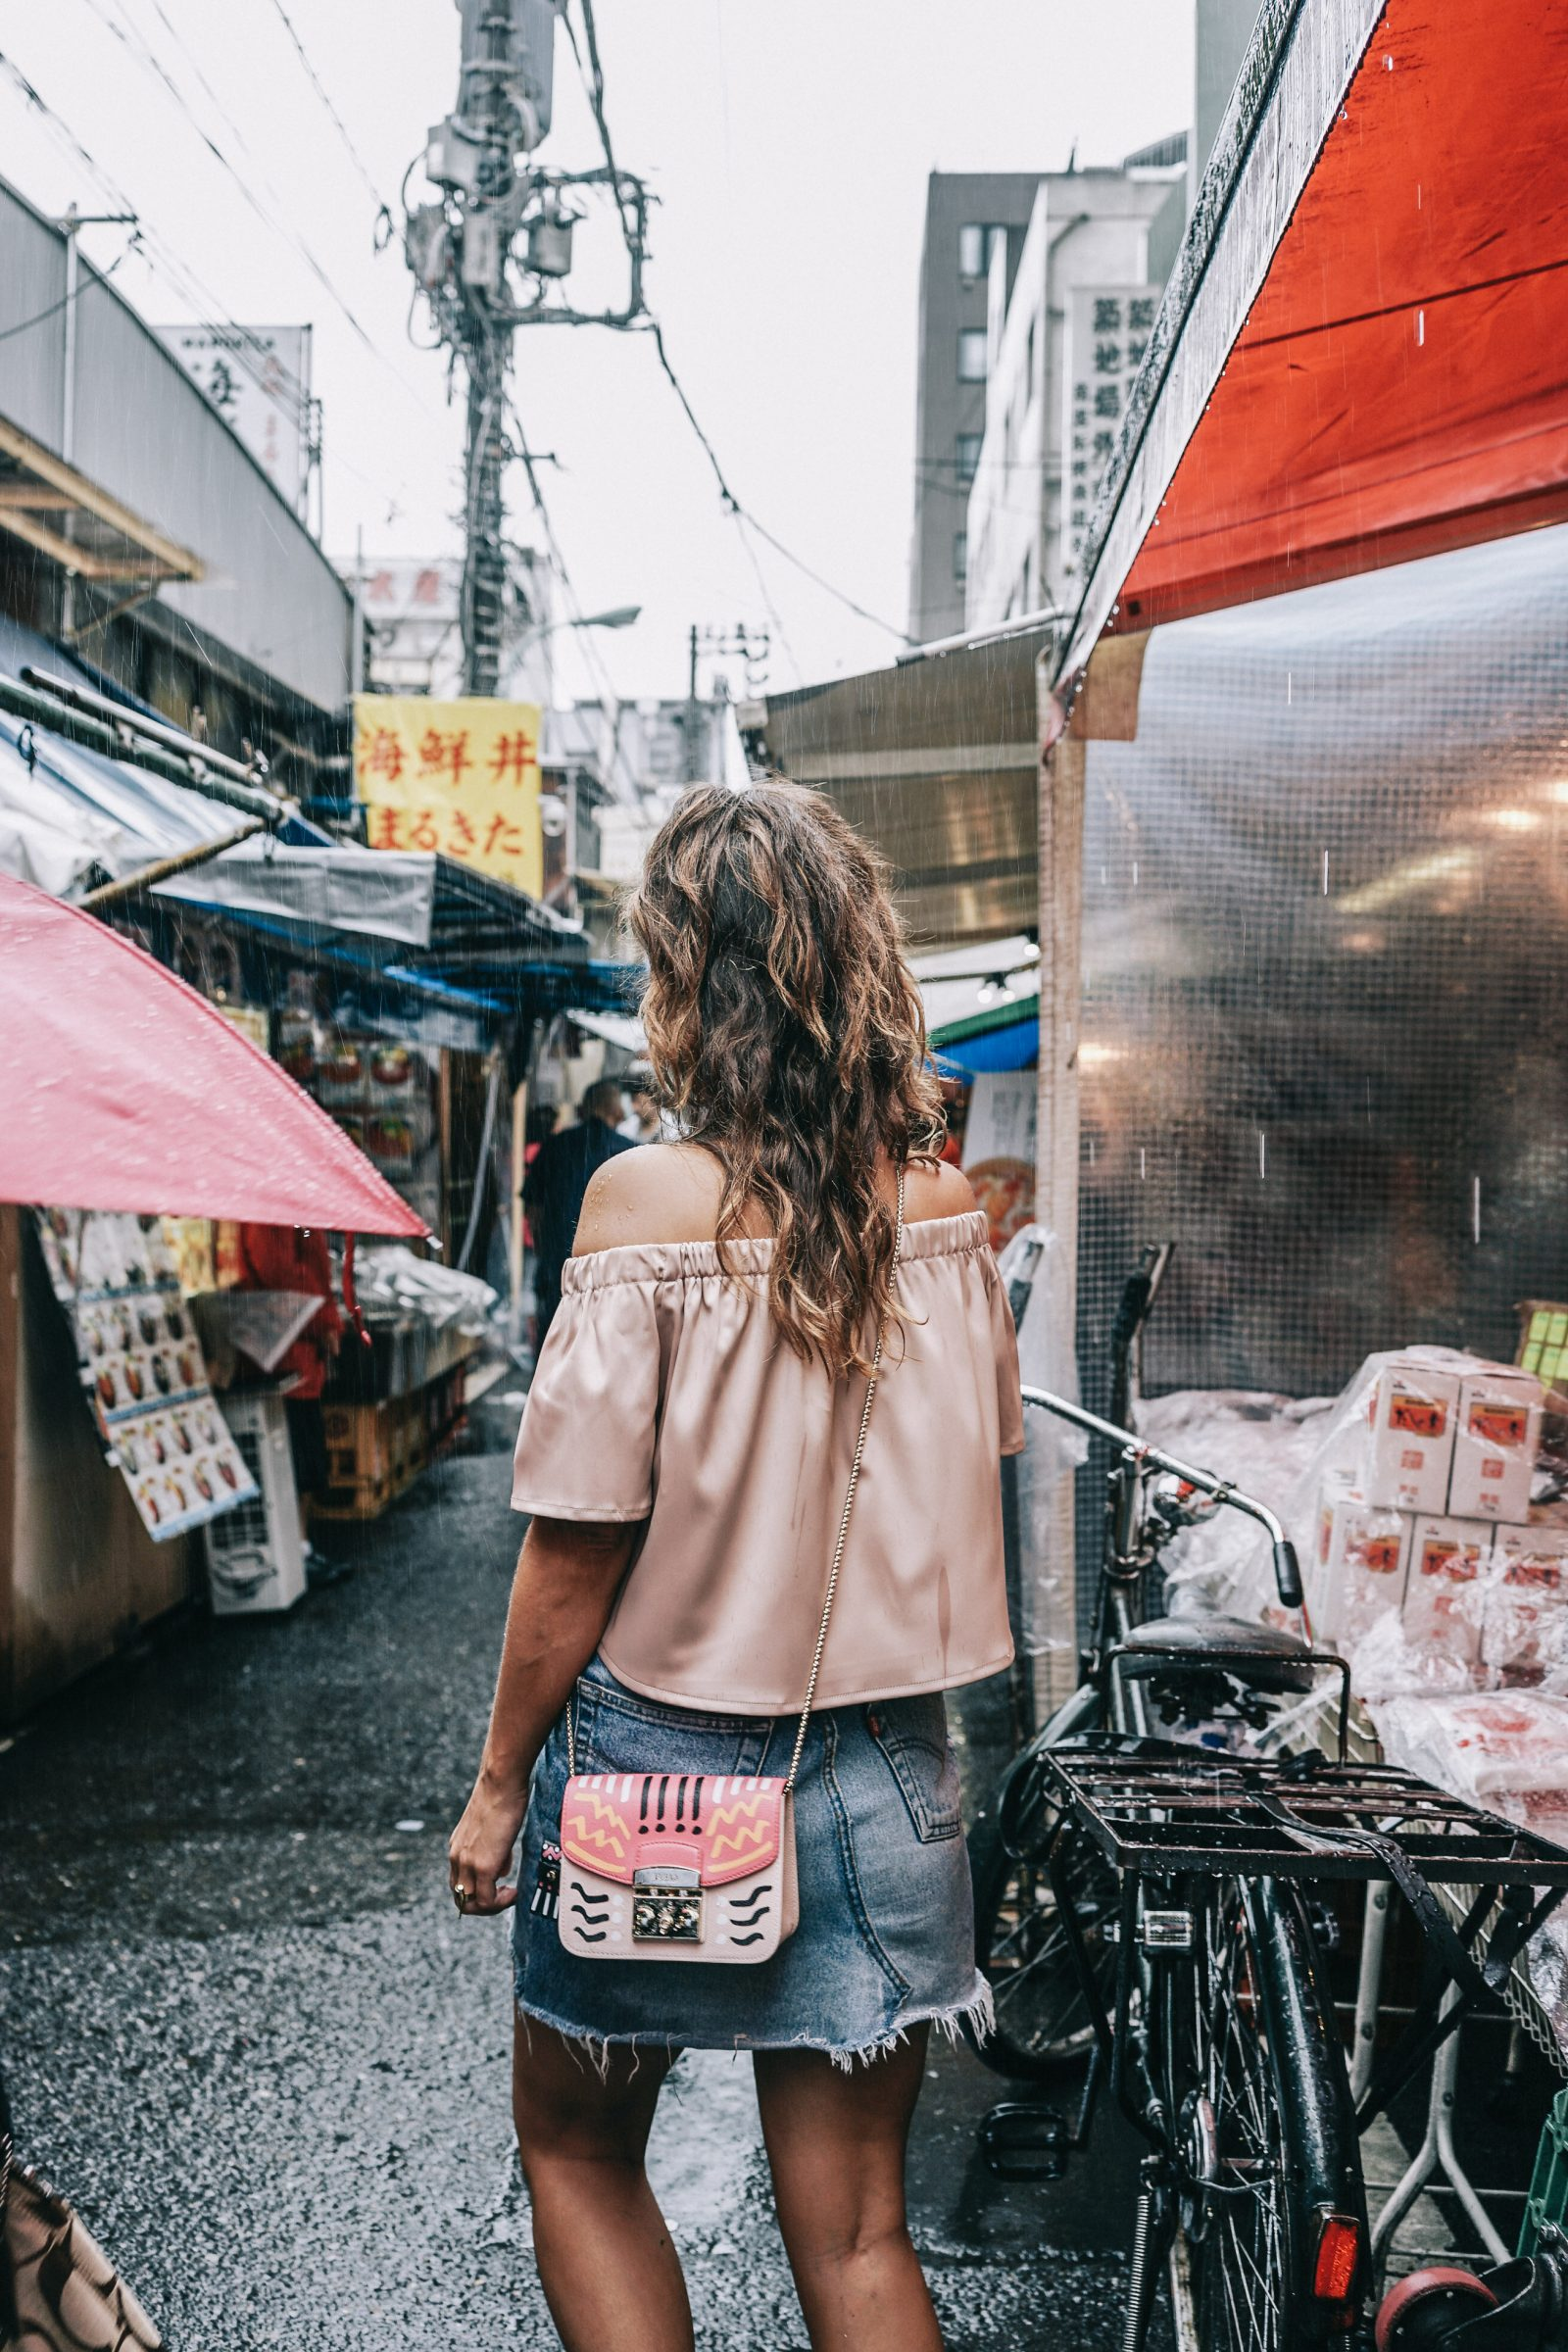 Tokyo_Travel_Guide-Fish_Market-Harajuku-Levis_Denim_Skirt-Off_The_Shoulders_Top-YSL_Sneakers-Outfit-Collage_Vintage-Street_Style-50